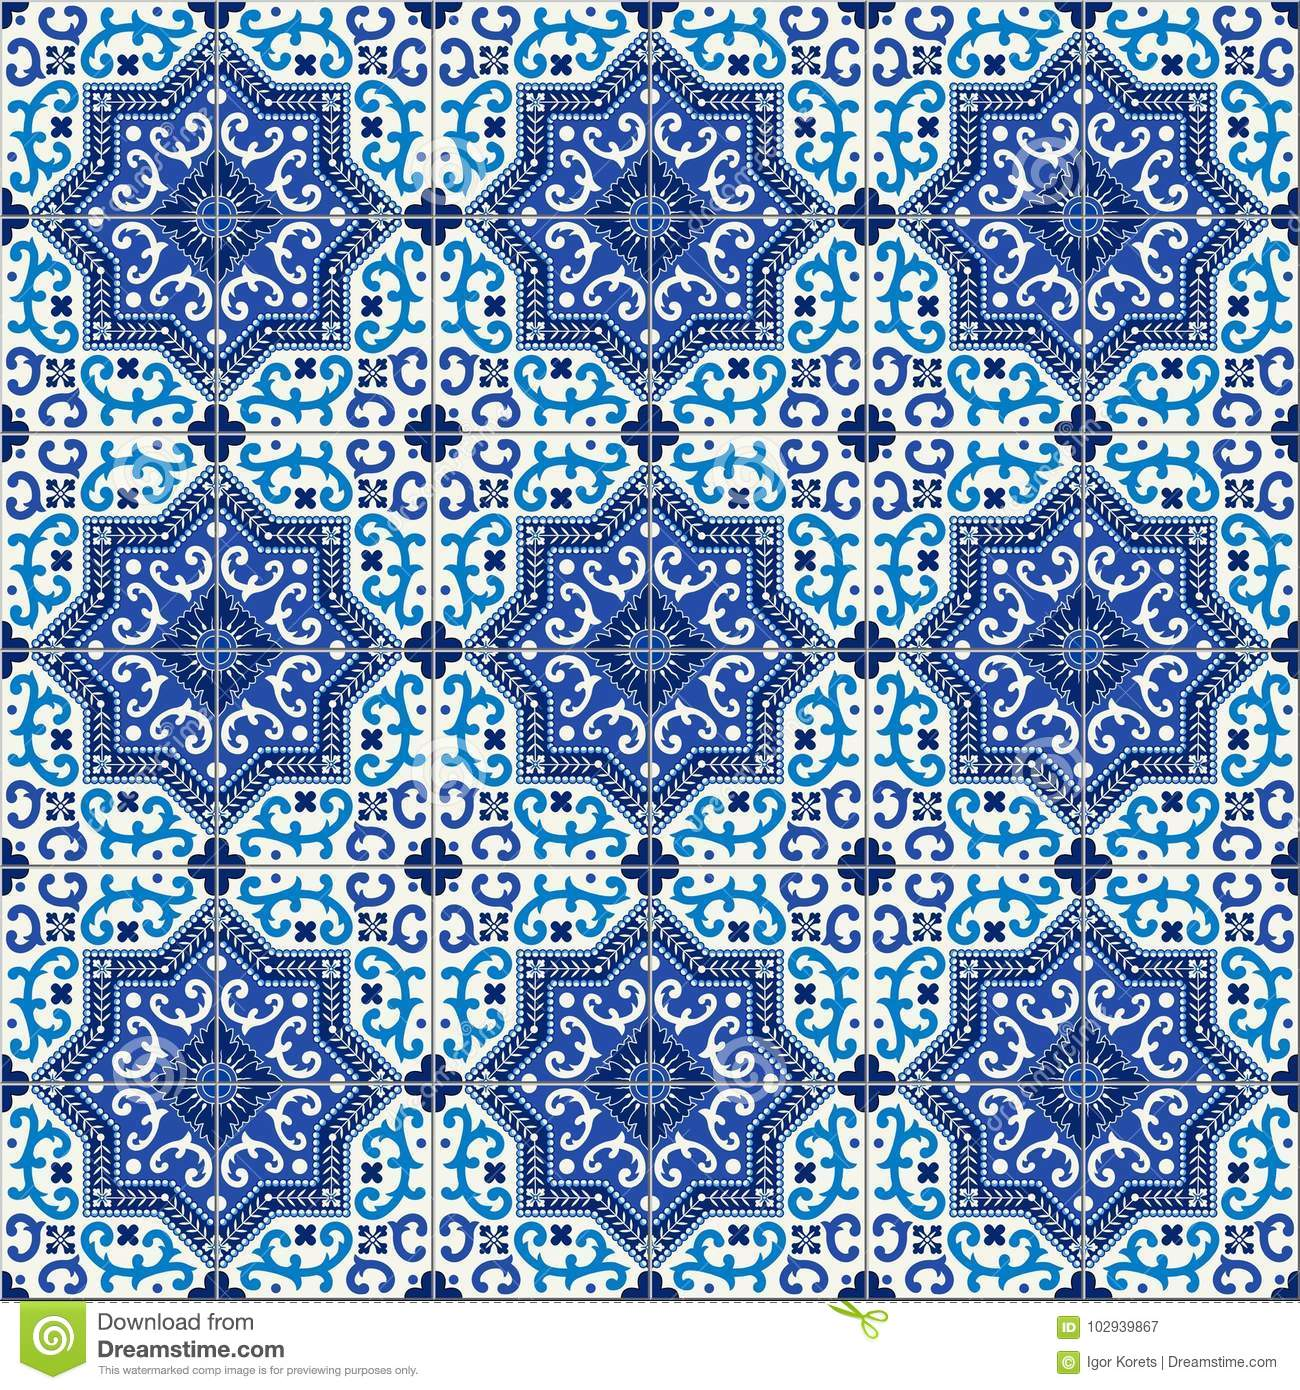 Gorgeous Seamless Pattern White Blue Moroccan Portuguese Tiles Azulejo Ornaments Can Be Used For Wallpaper Fills Web Page Backgroundsurface